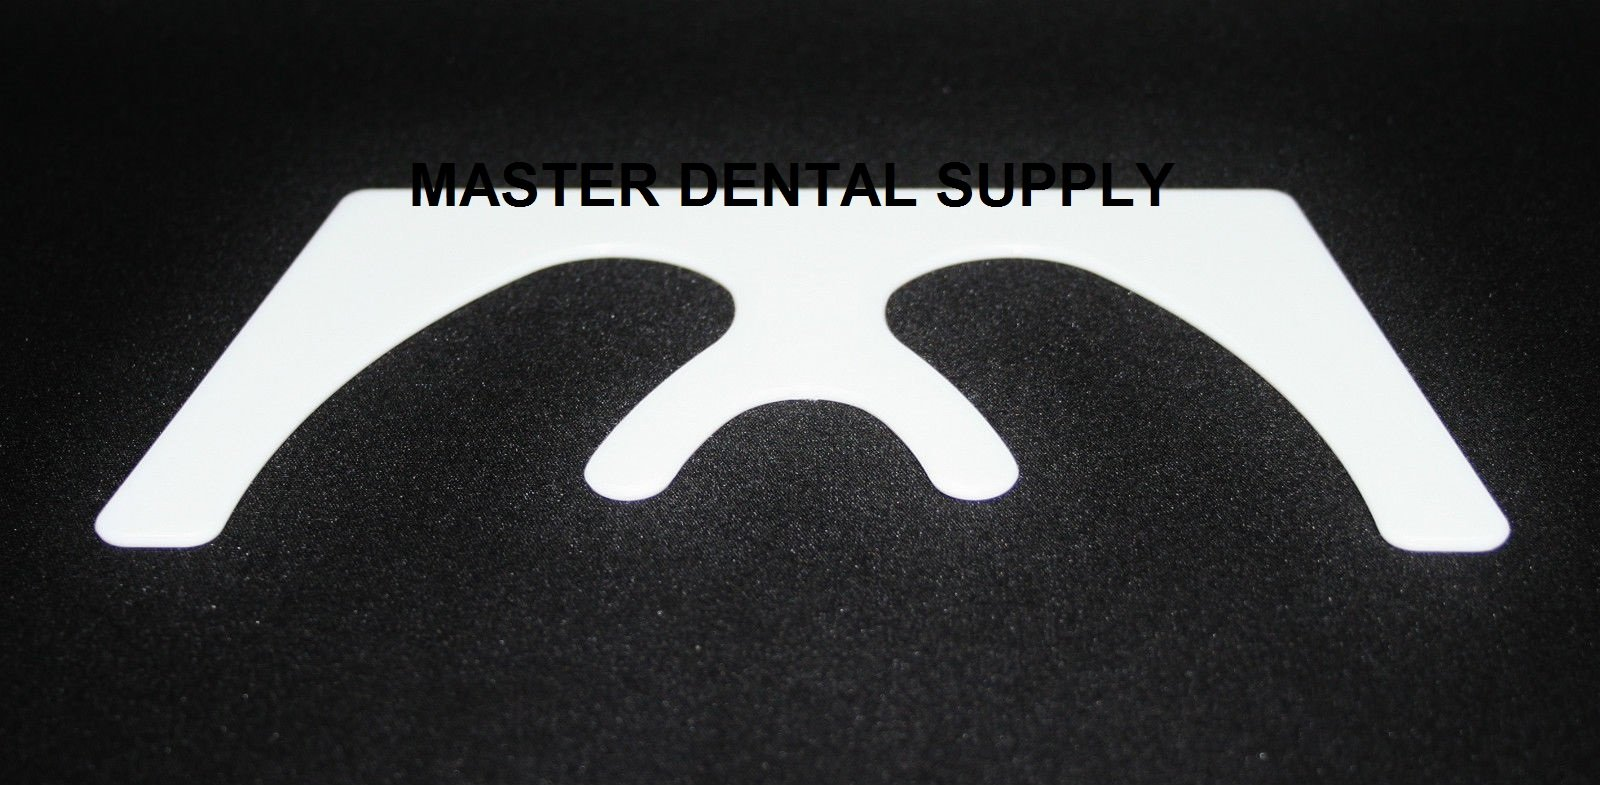 Dental Occlusal FOX Plane WHITE Color Occlusal Maxillary Casting Plastic Material AUTOCLAVABLE